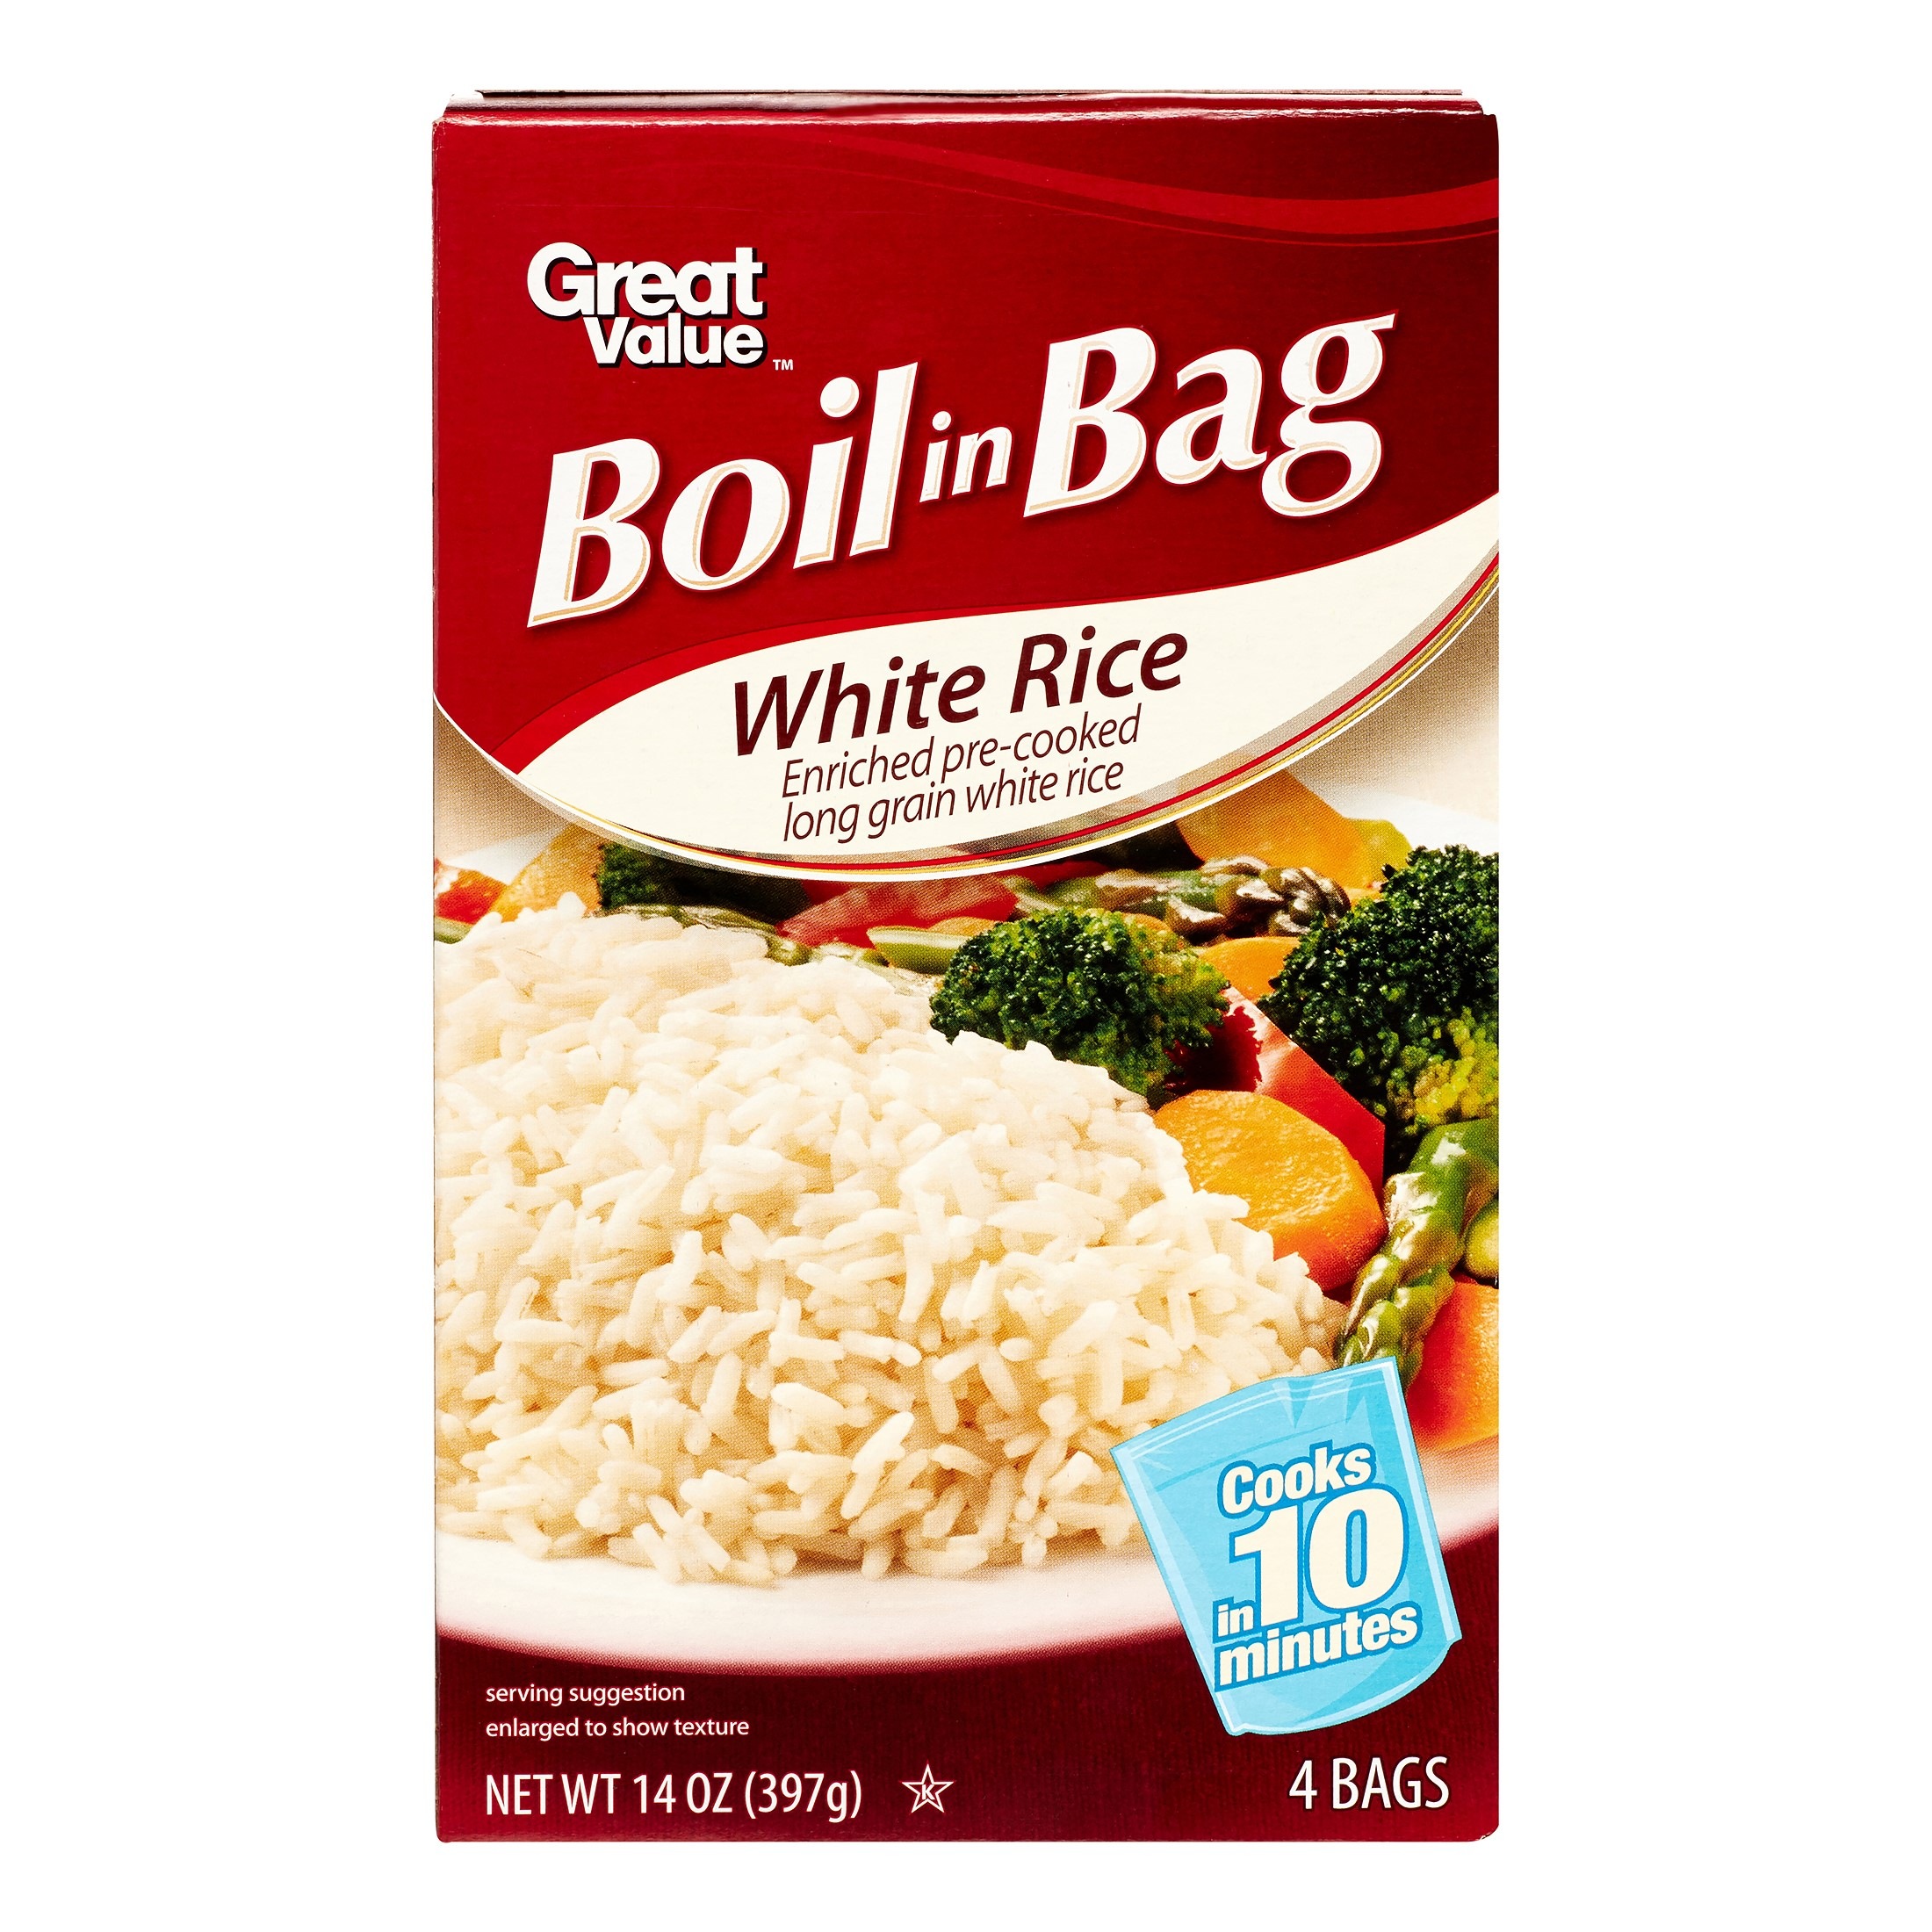 Great Value Boil-in-Bag White Rice, 14 Oz by Great Value